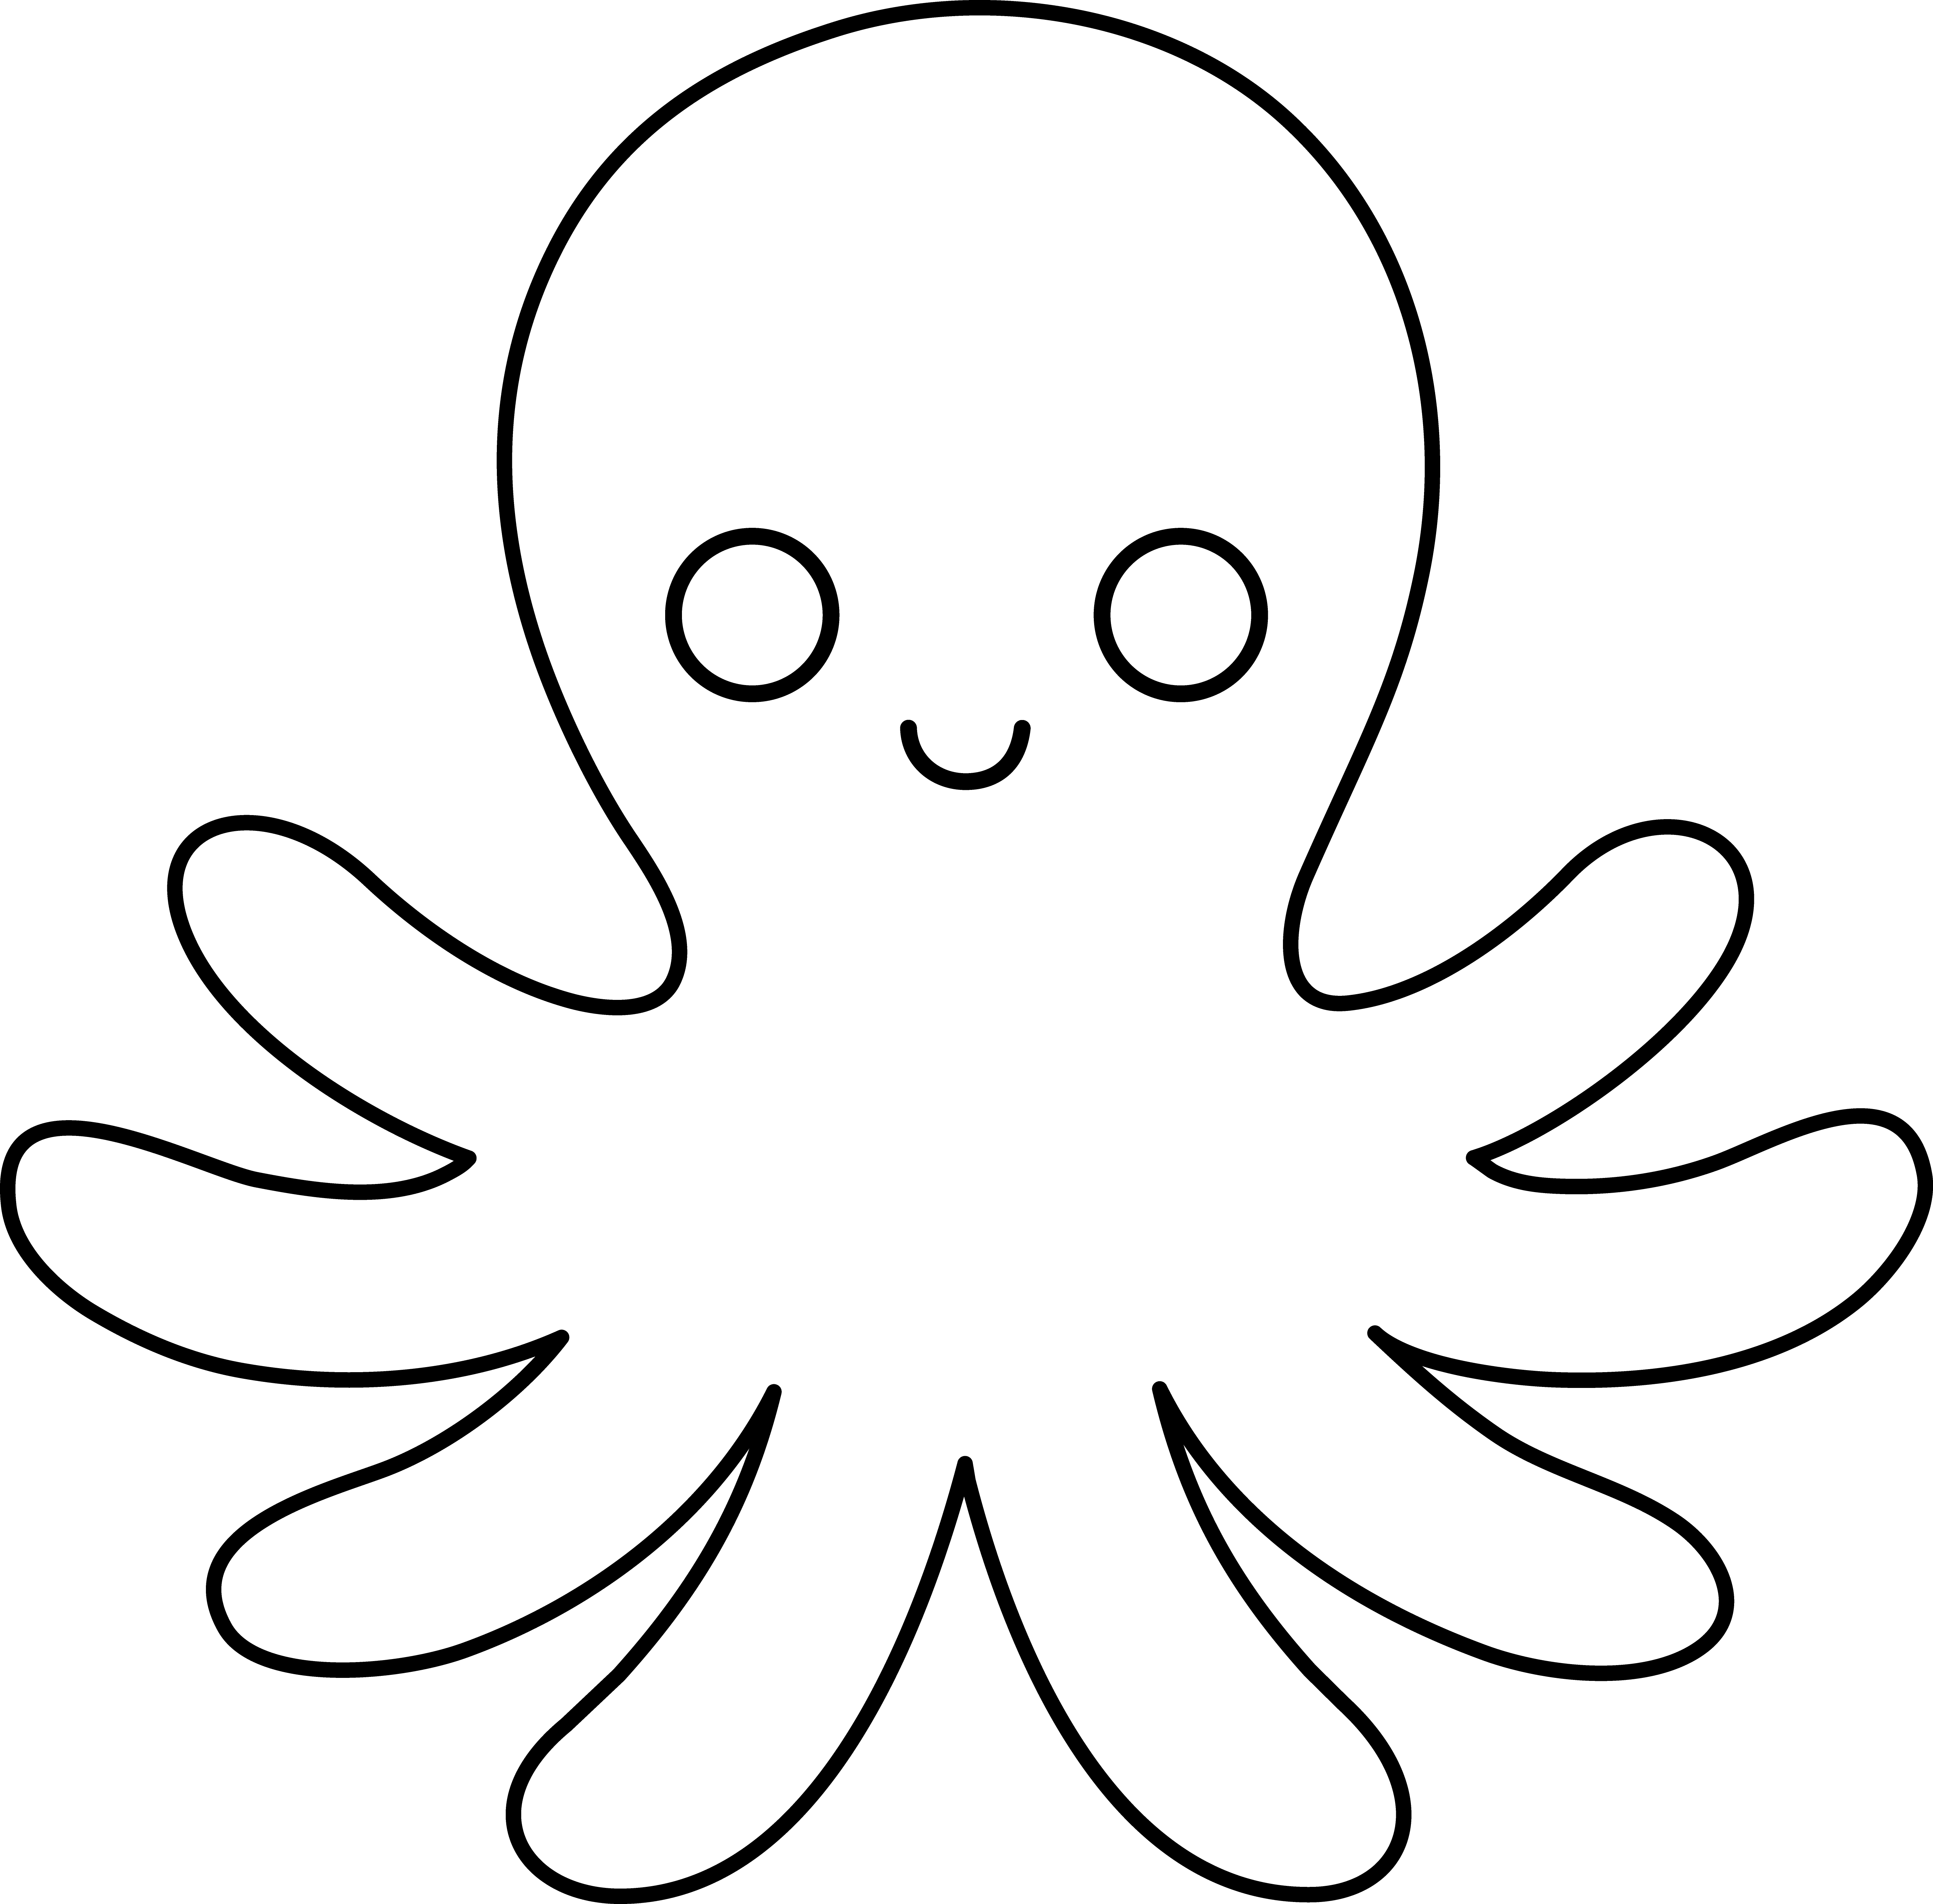 1402 Octopus Clipart Black And White Octopus Clipart Black And.